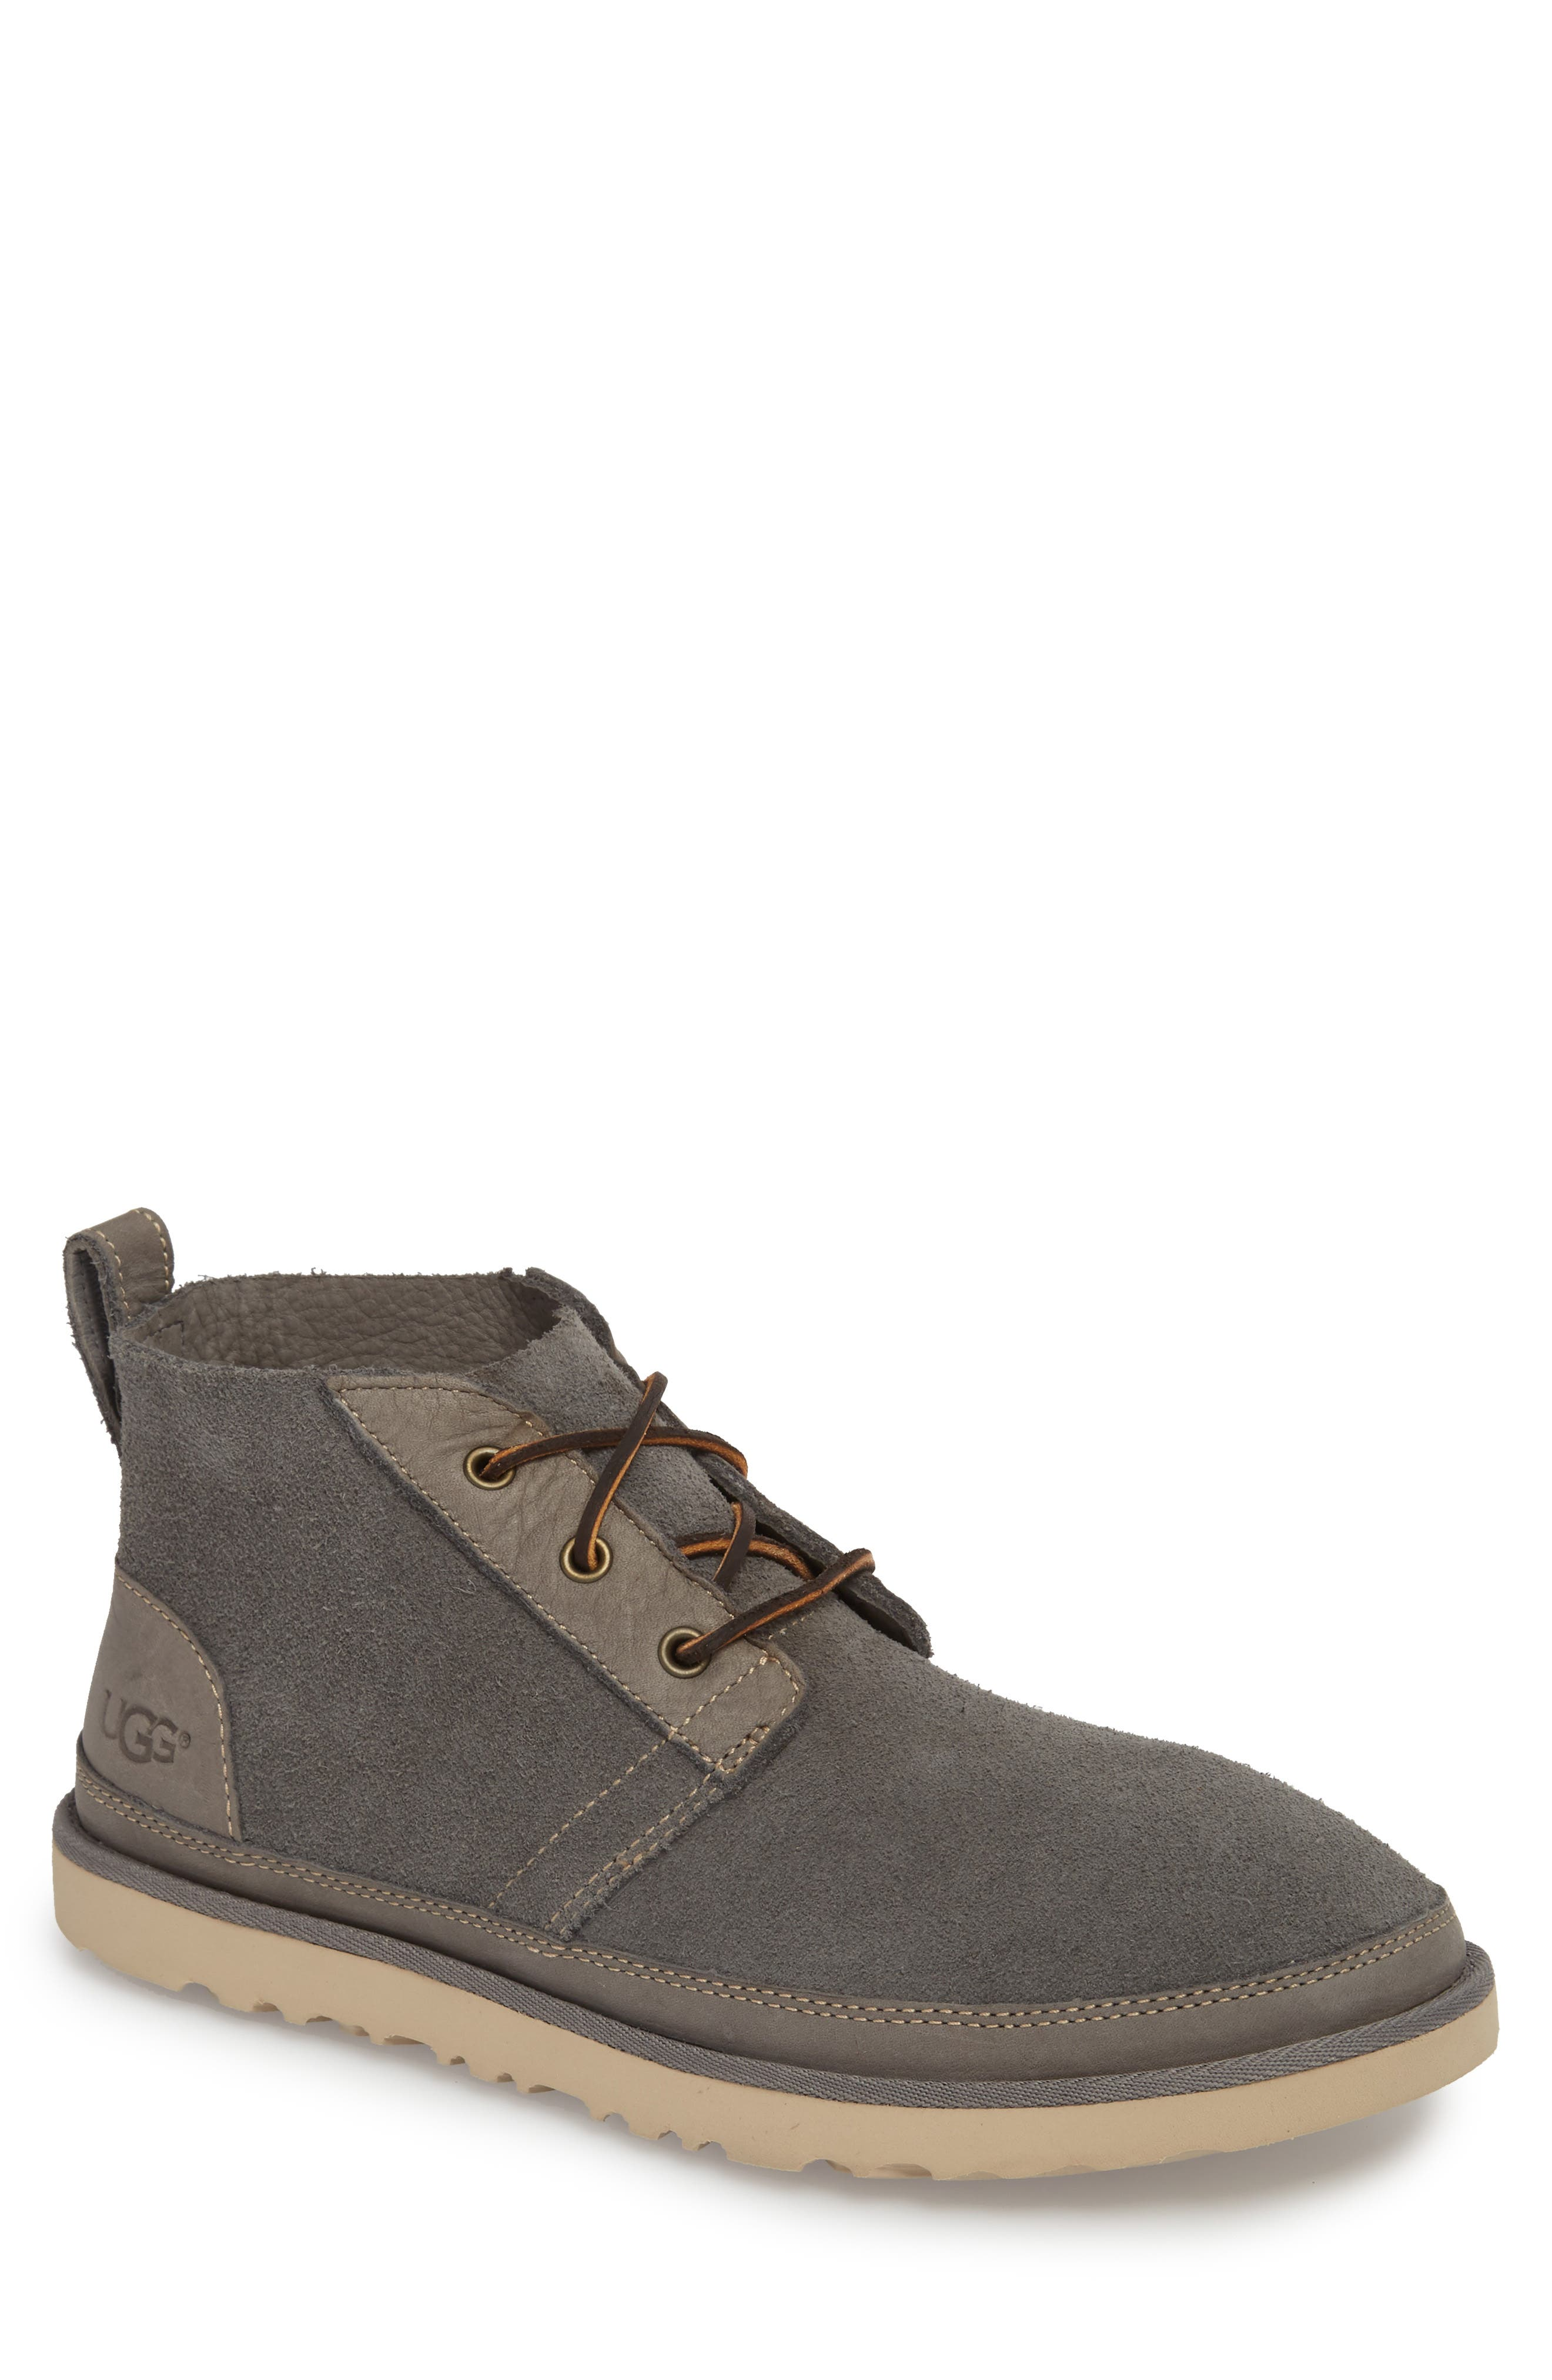 Neumel Unlined Chukka Boot,                         Main,                         color, CHARCOAL LEATHER